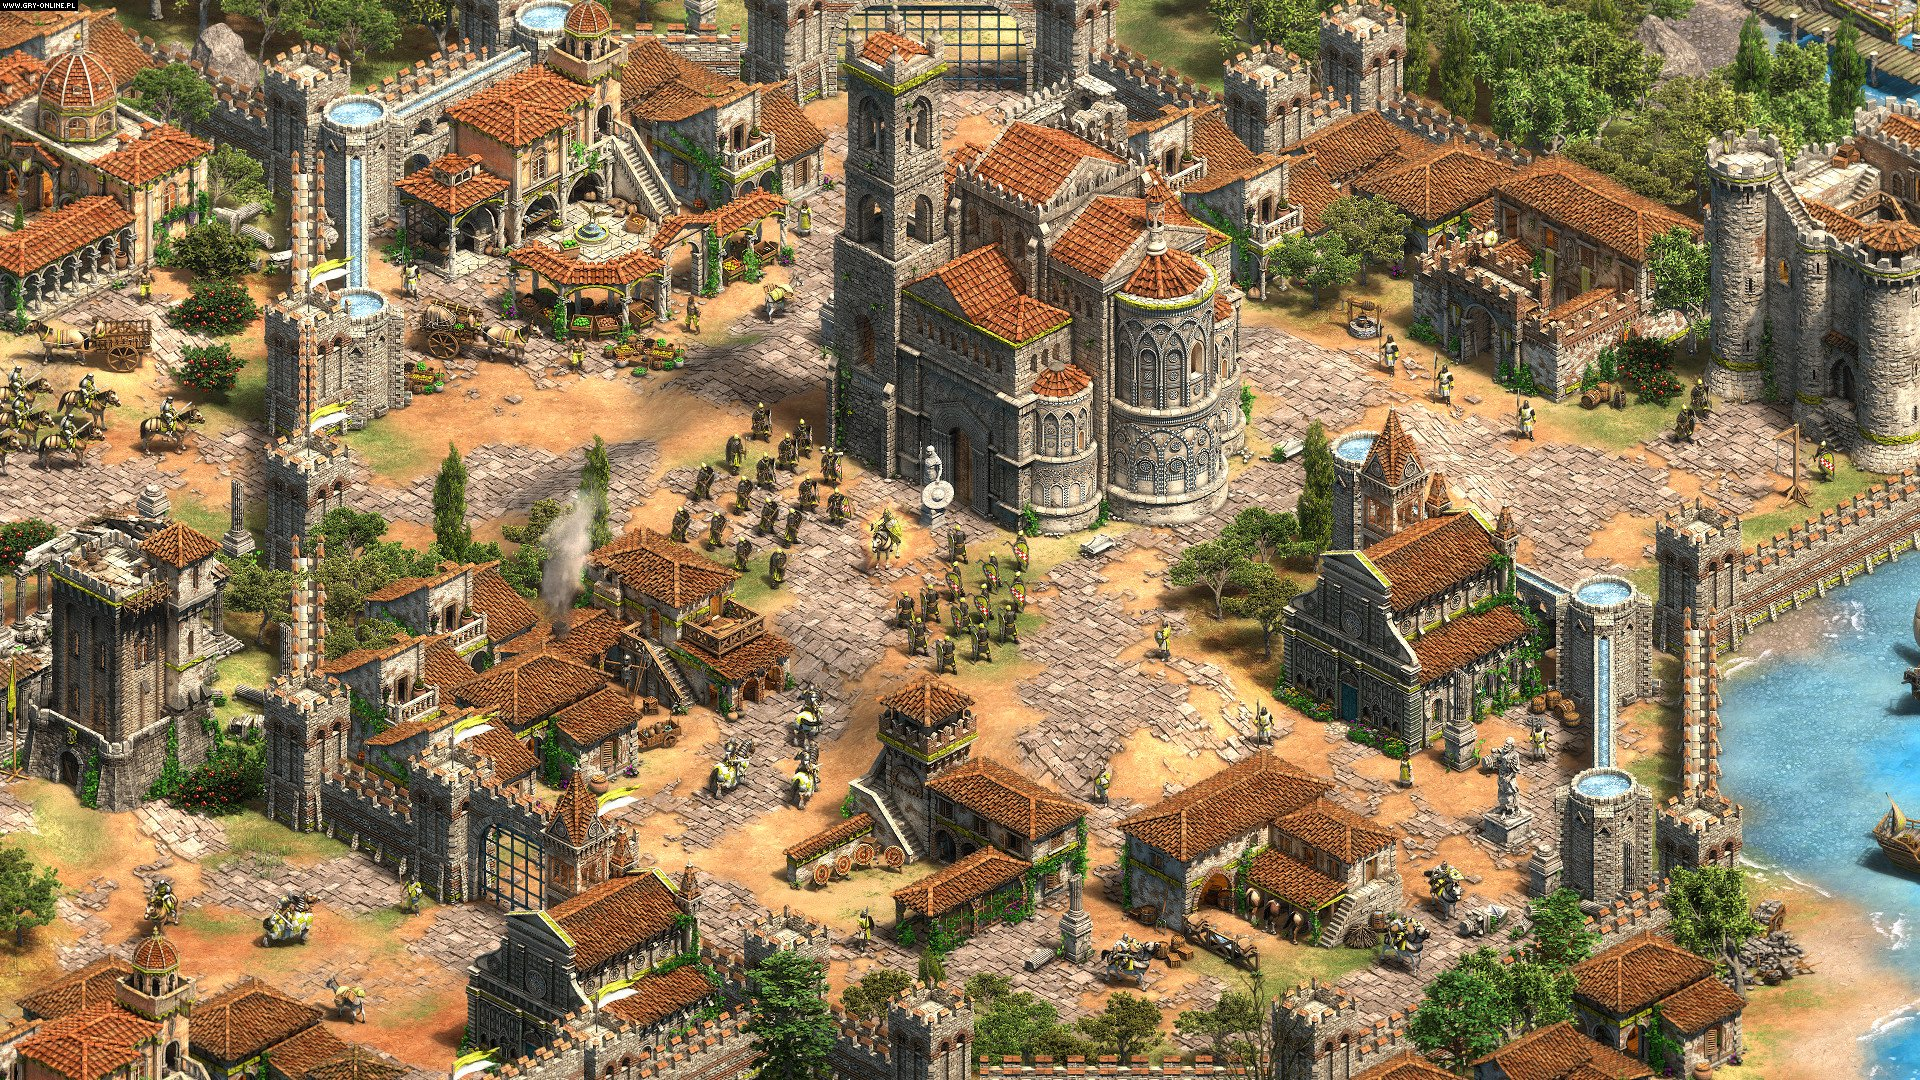 Age of Empires II: Definitive Edition-Lords of the West PC, foto: reprodução